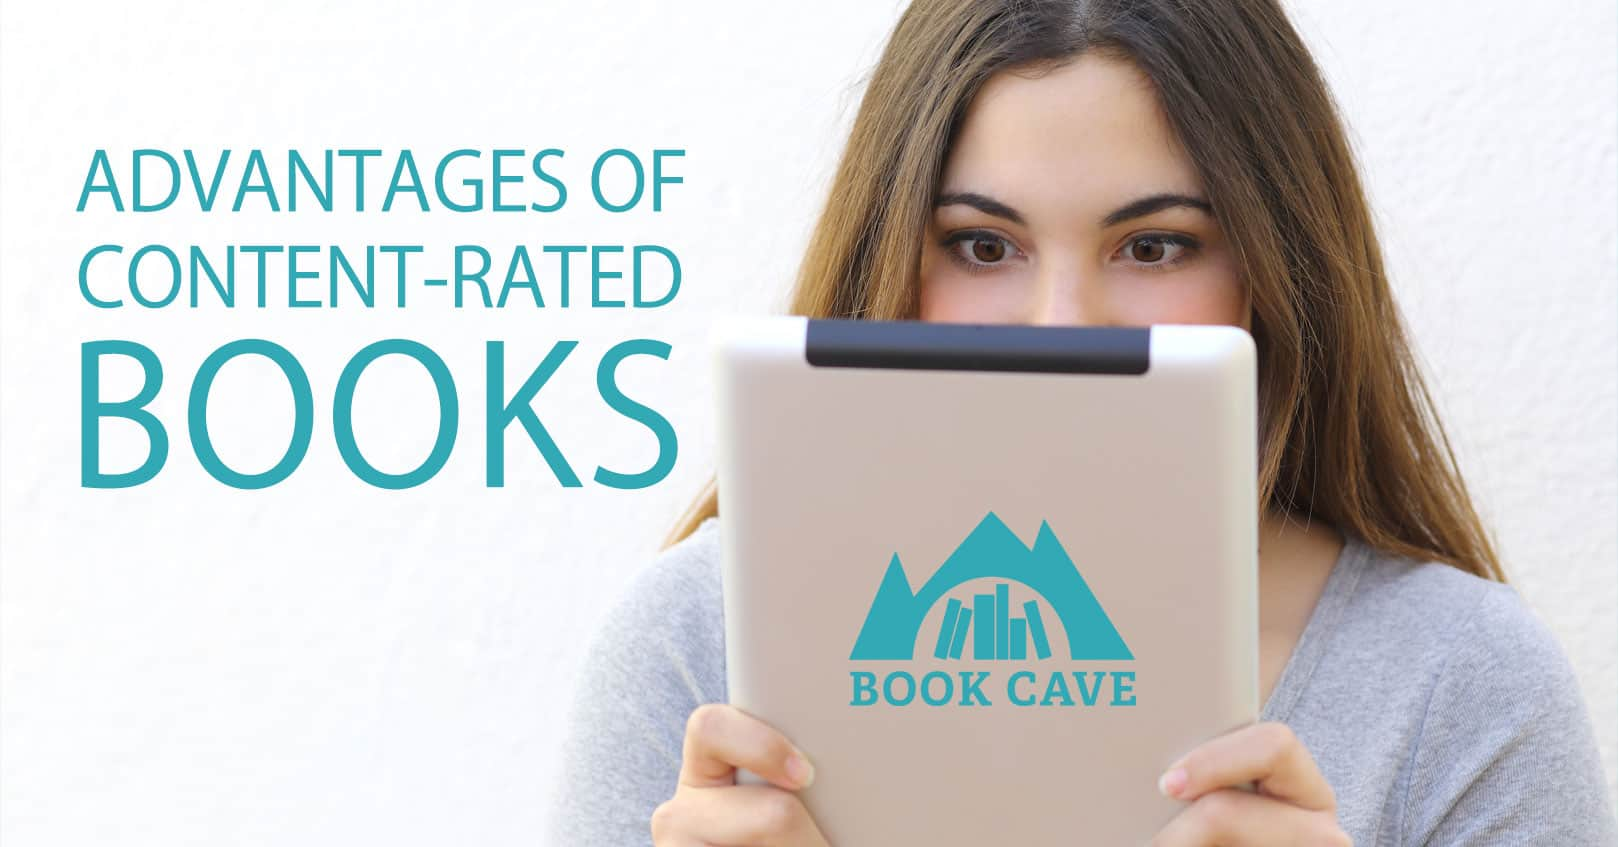 Why rated books